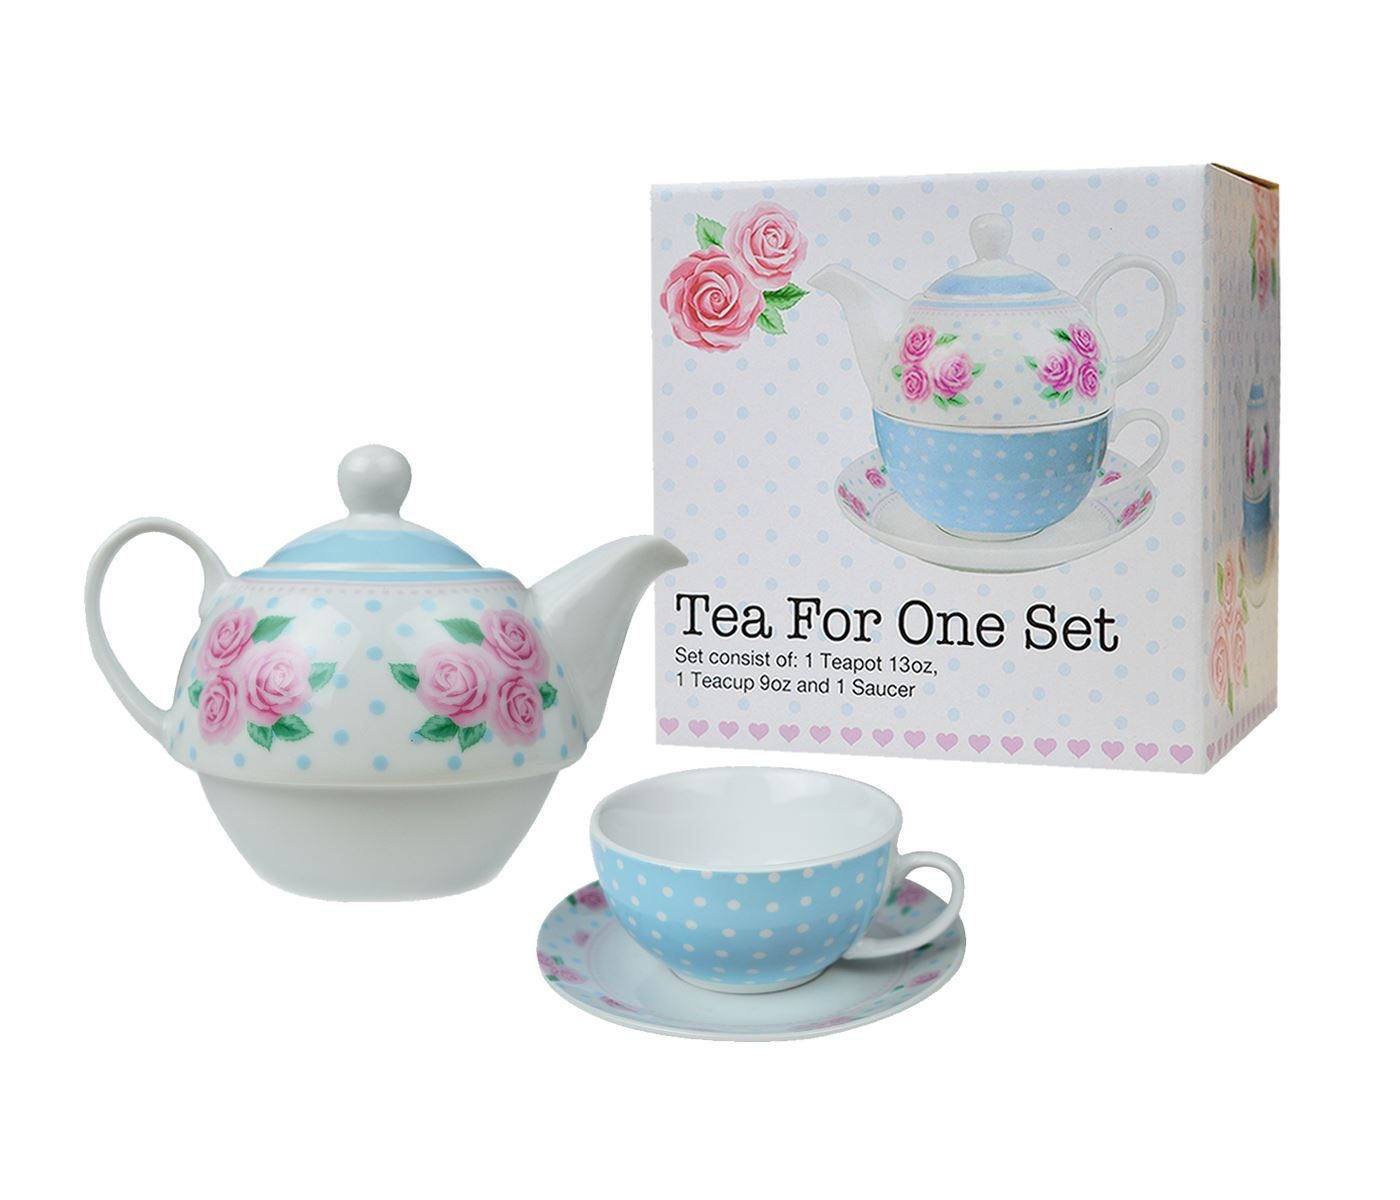 Tea For One Set 3pcs Porcelain Party Tableware Mugs Saucer Tea Pot Stacked Cup Ebay